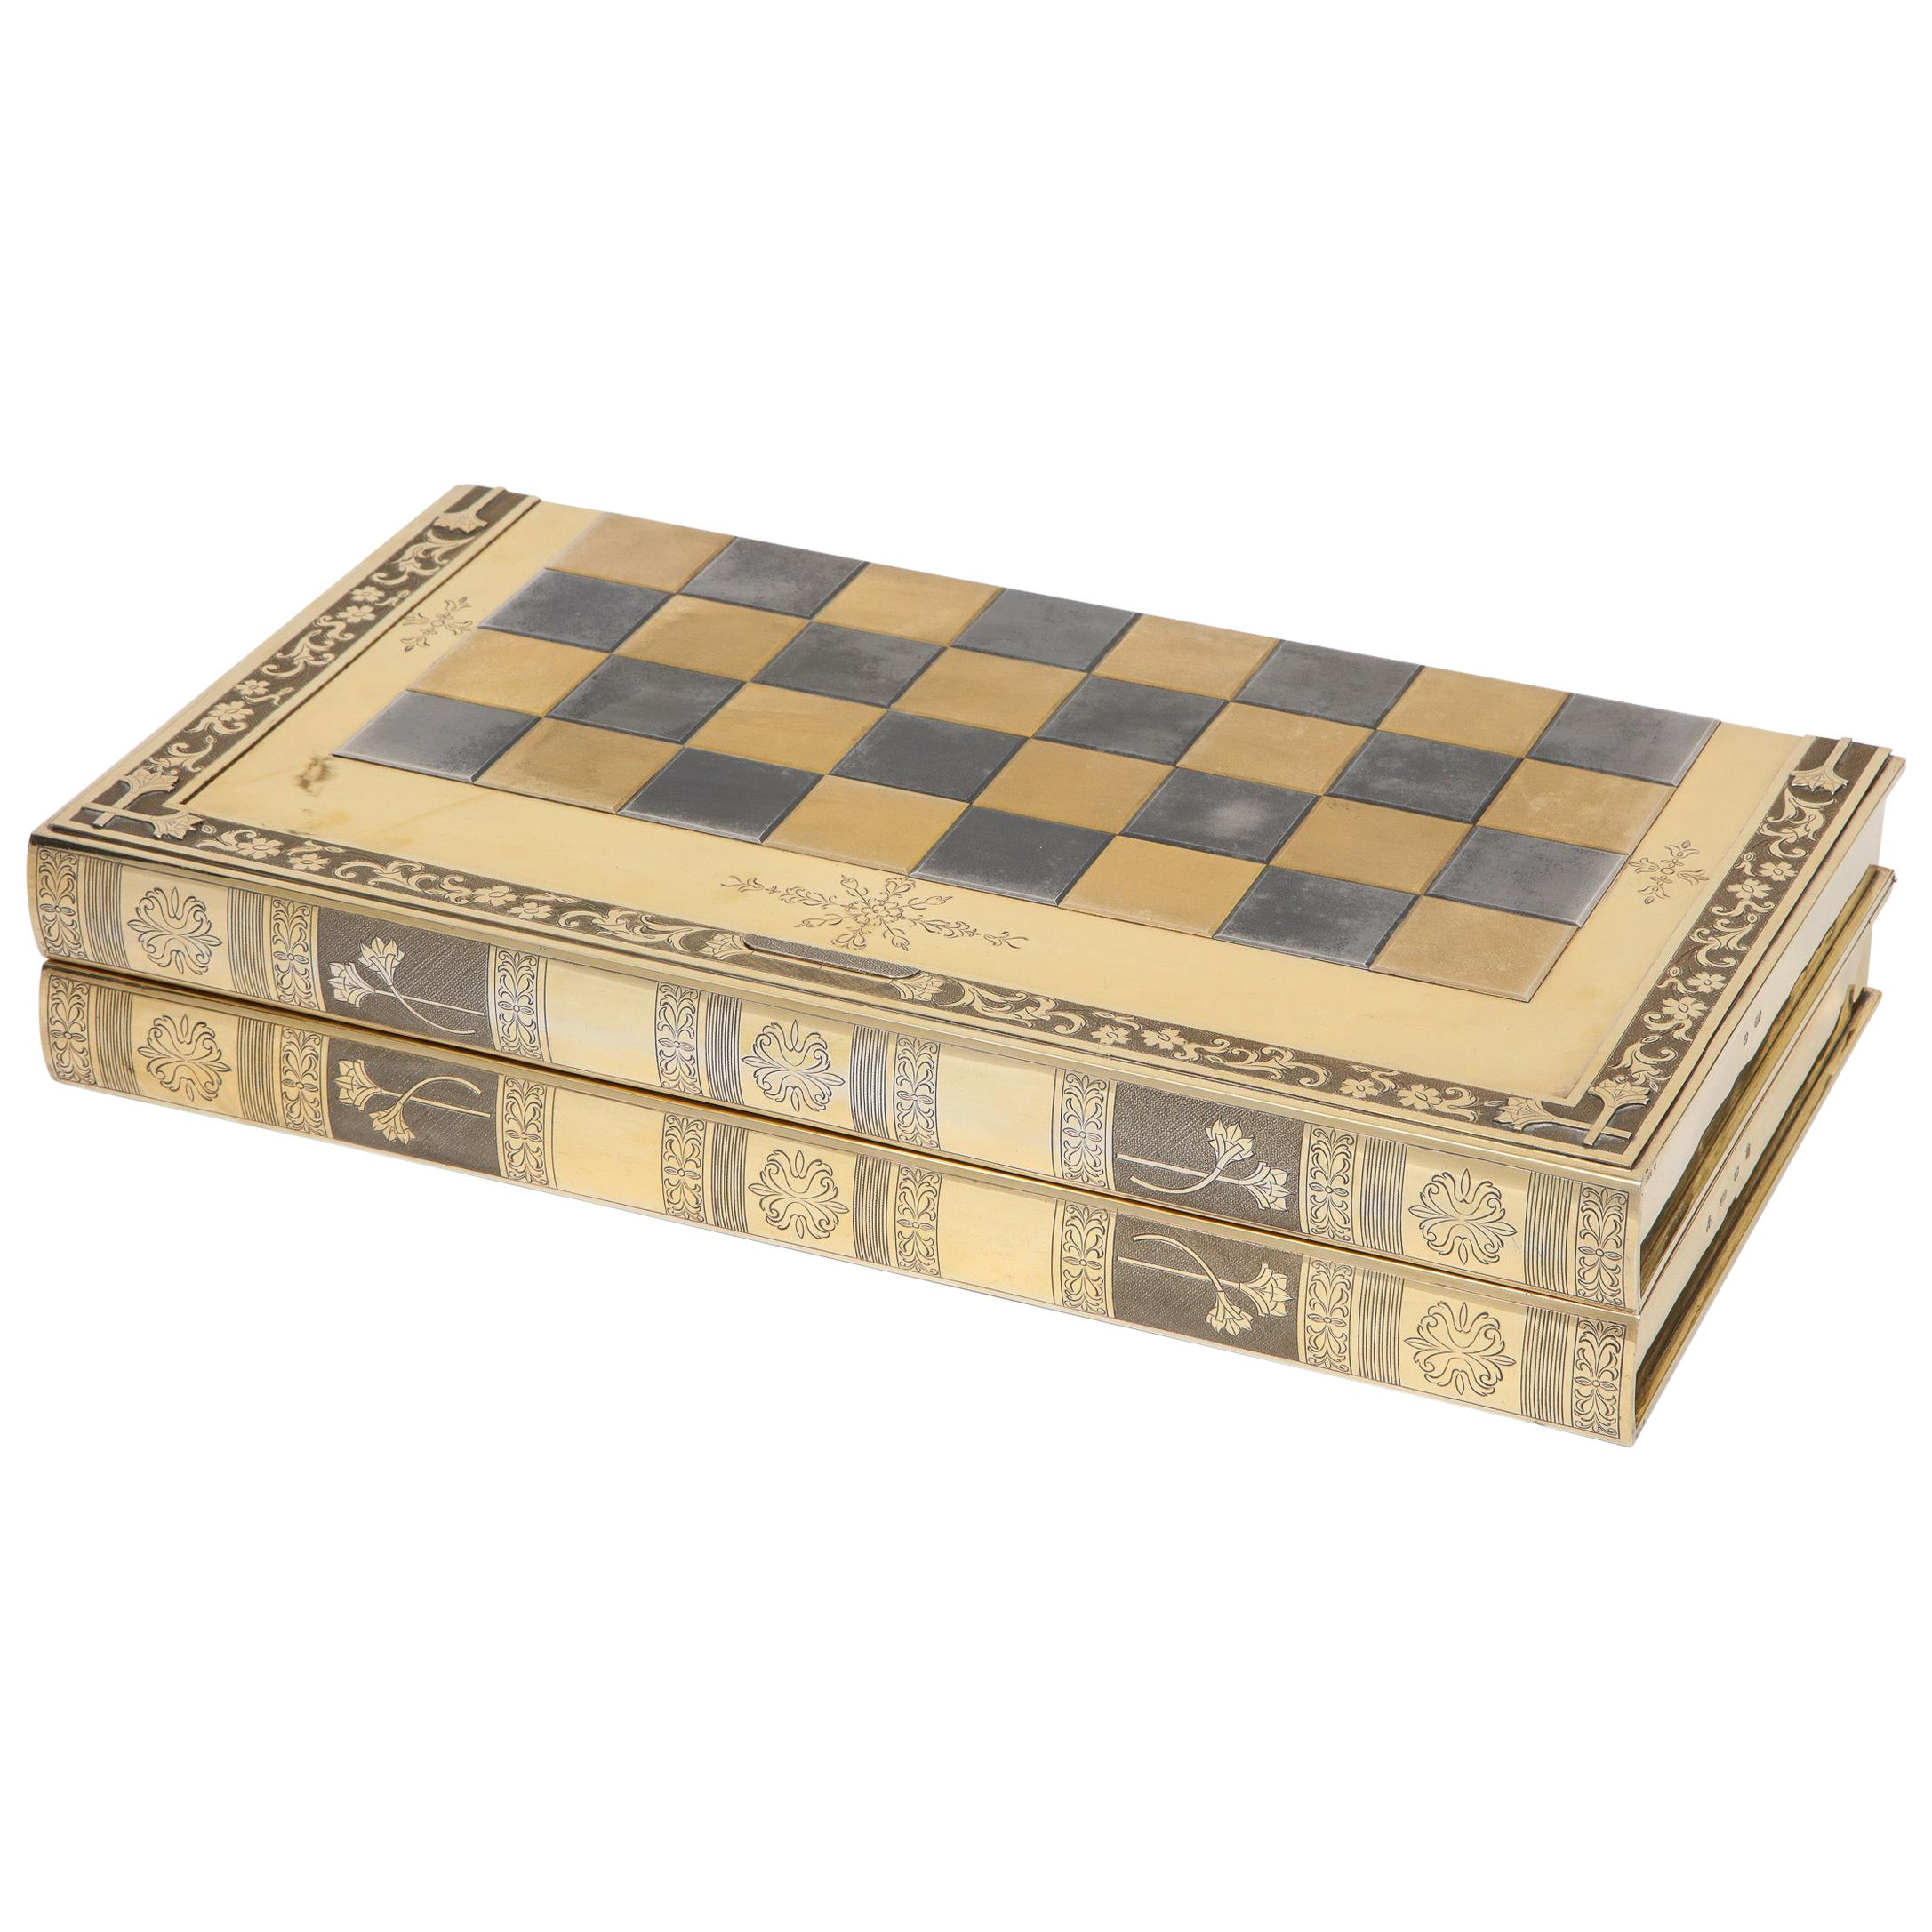 Antique Chess Boards - 103 For Sale on 1stdibs